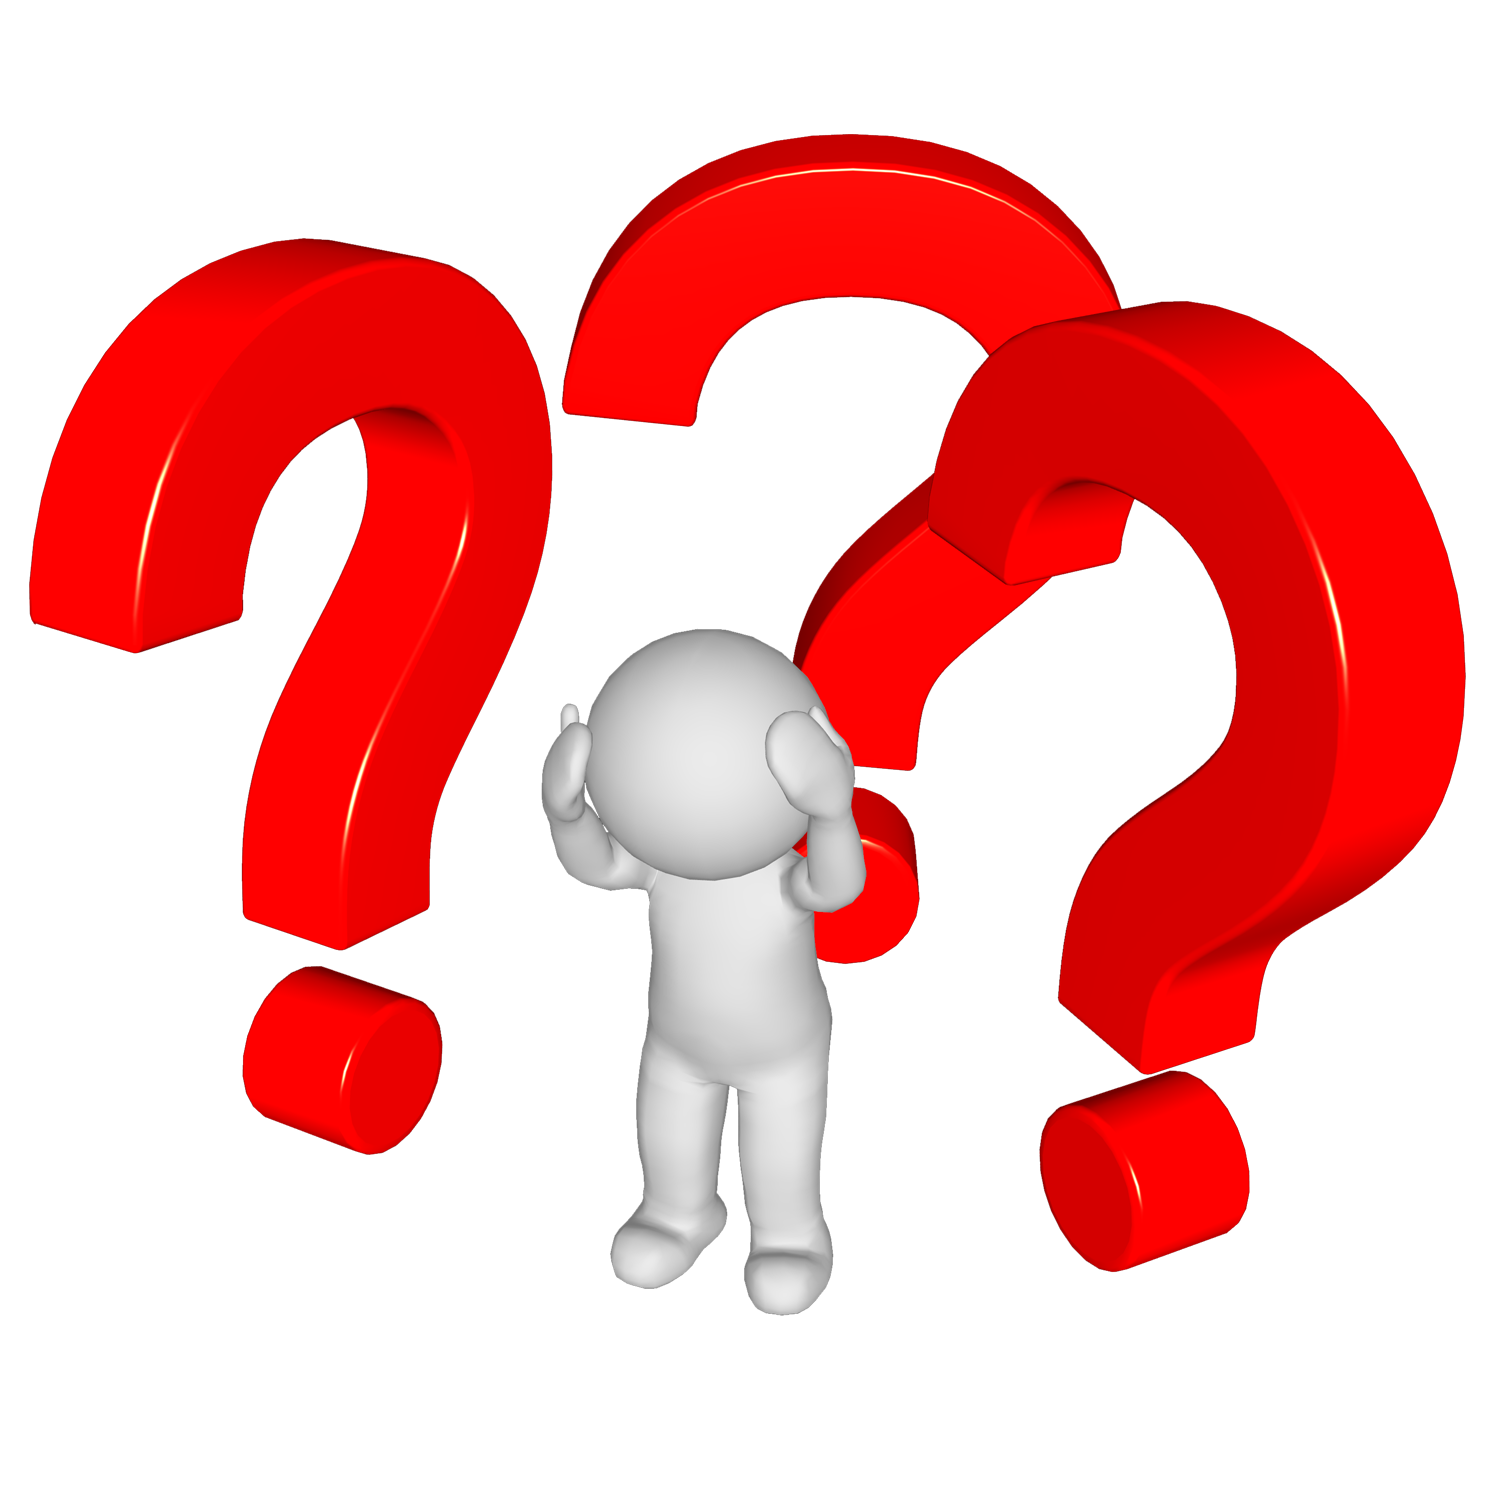 Evidence clipart problem identification. The facing by computer